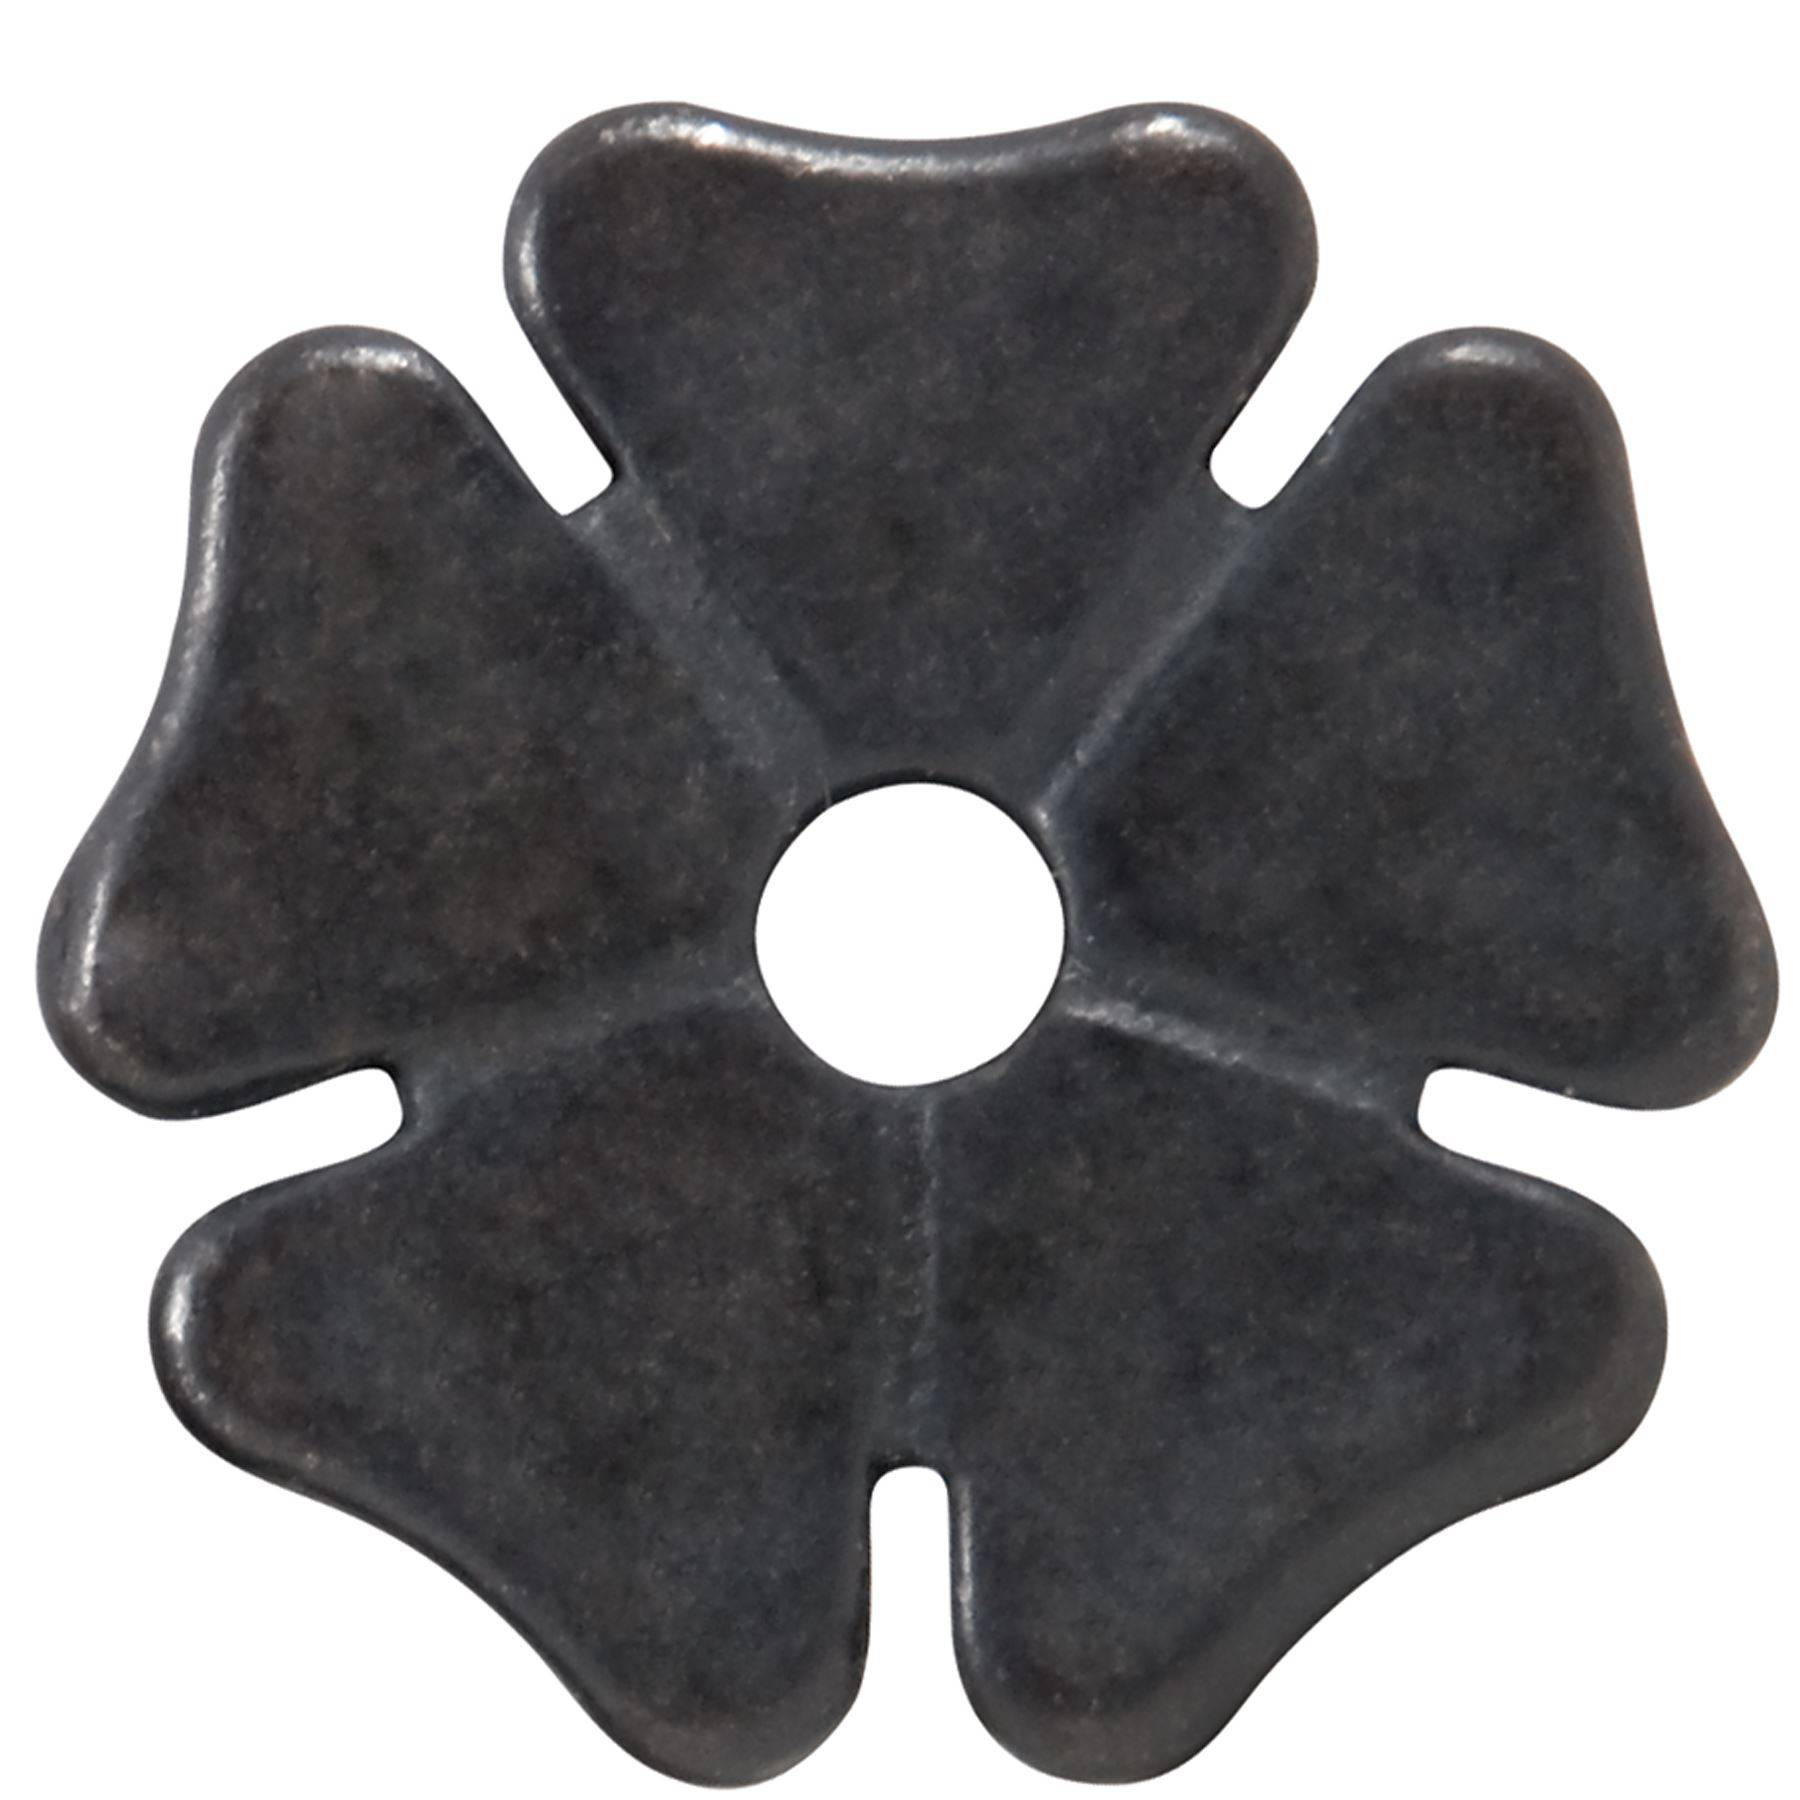 Cloverleaf Black Steel Rowel - Pair